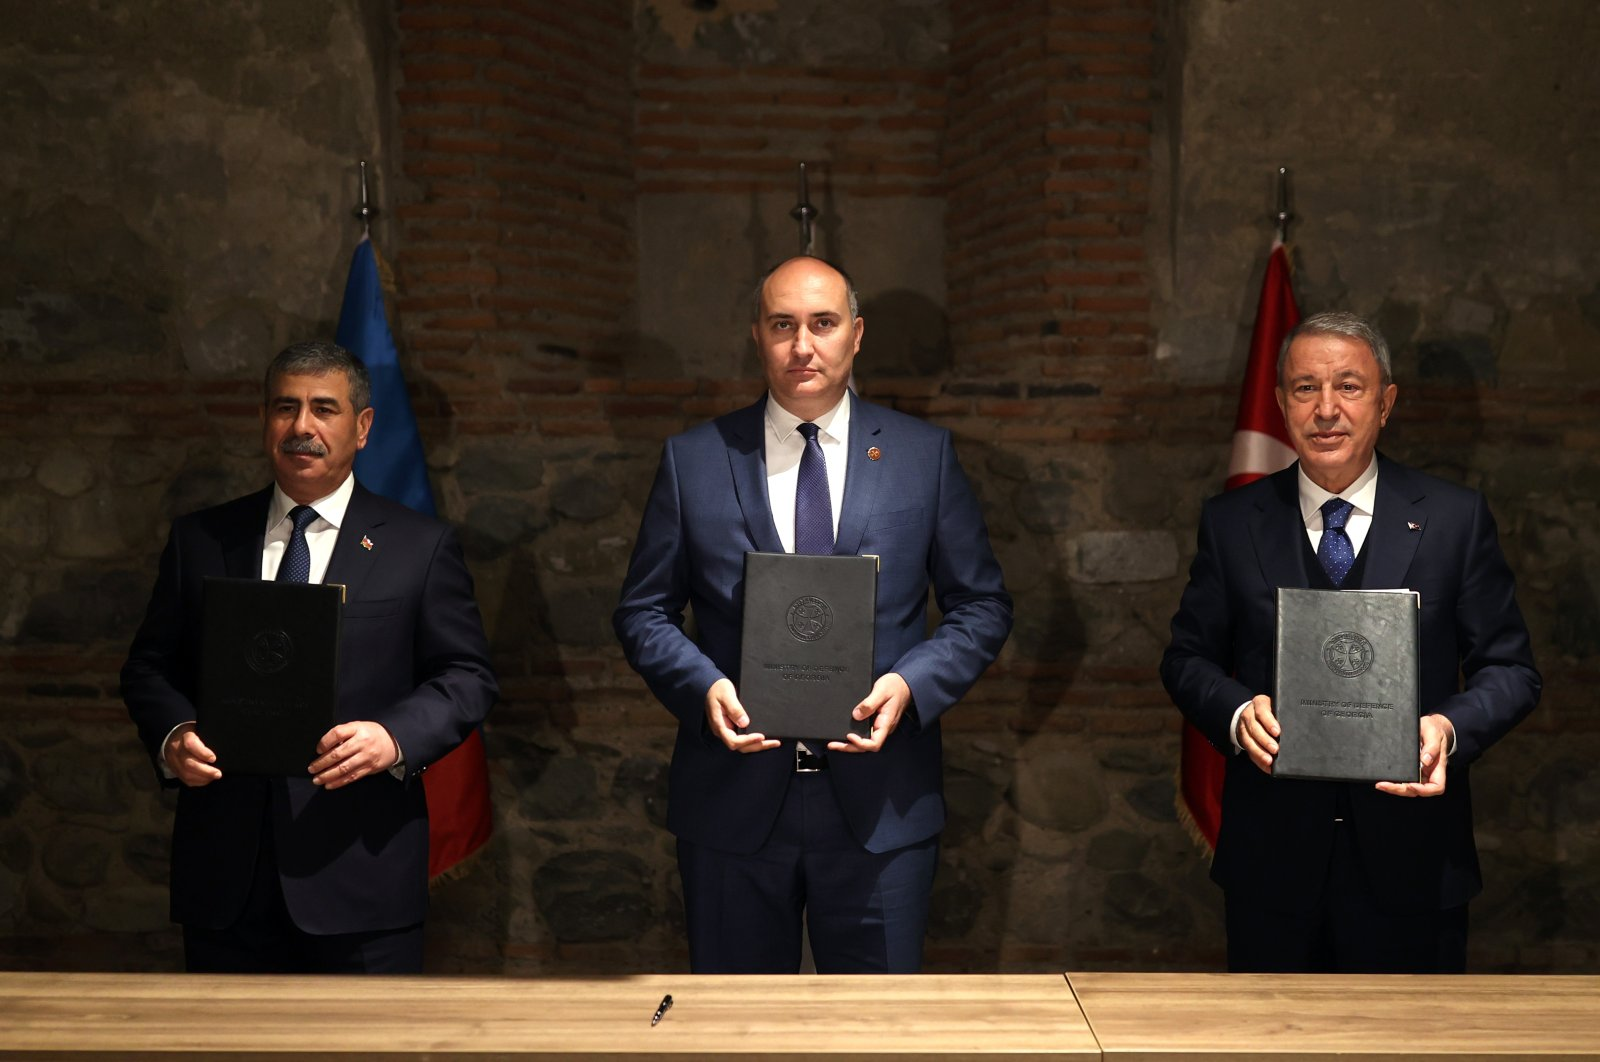 Georgia's Defense Minister Juansher Burchuladze is seen together with Defense Minister Hulusi Akar (R) and Azerbaijan's Defence Minister Zakir Hasanov in Tbilisi, Georgia, Oct. 5, 2021 (AA Photo)